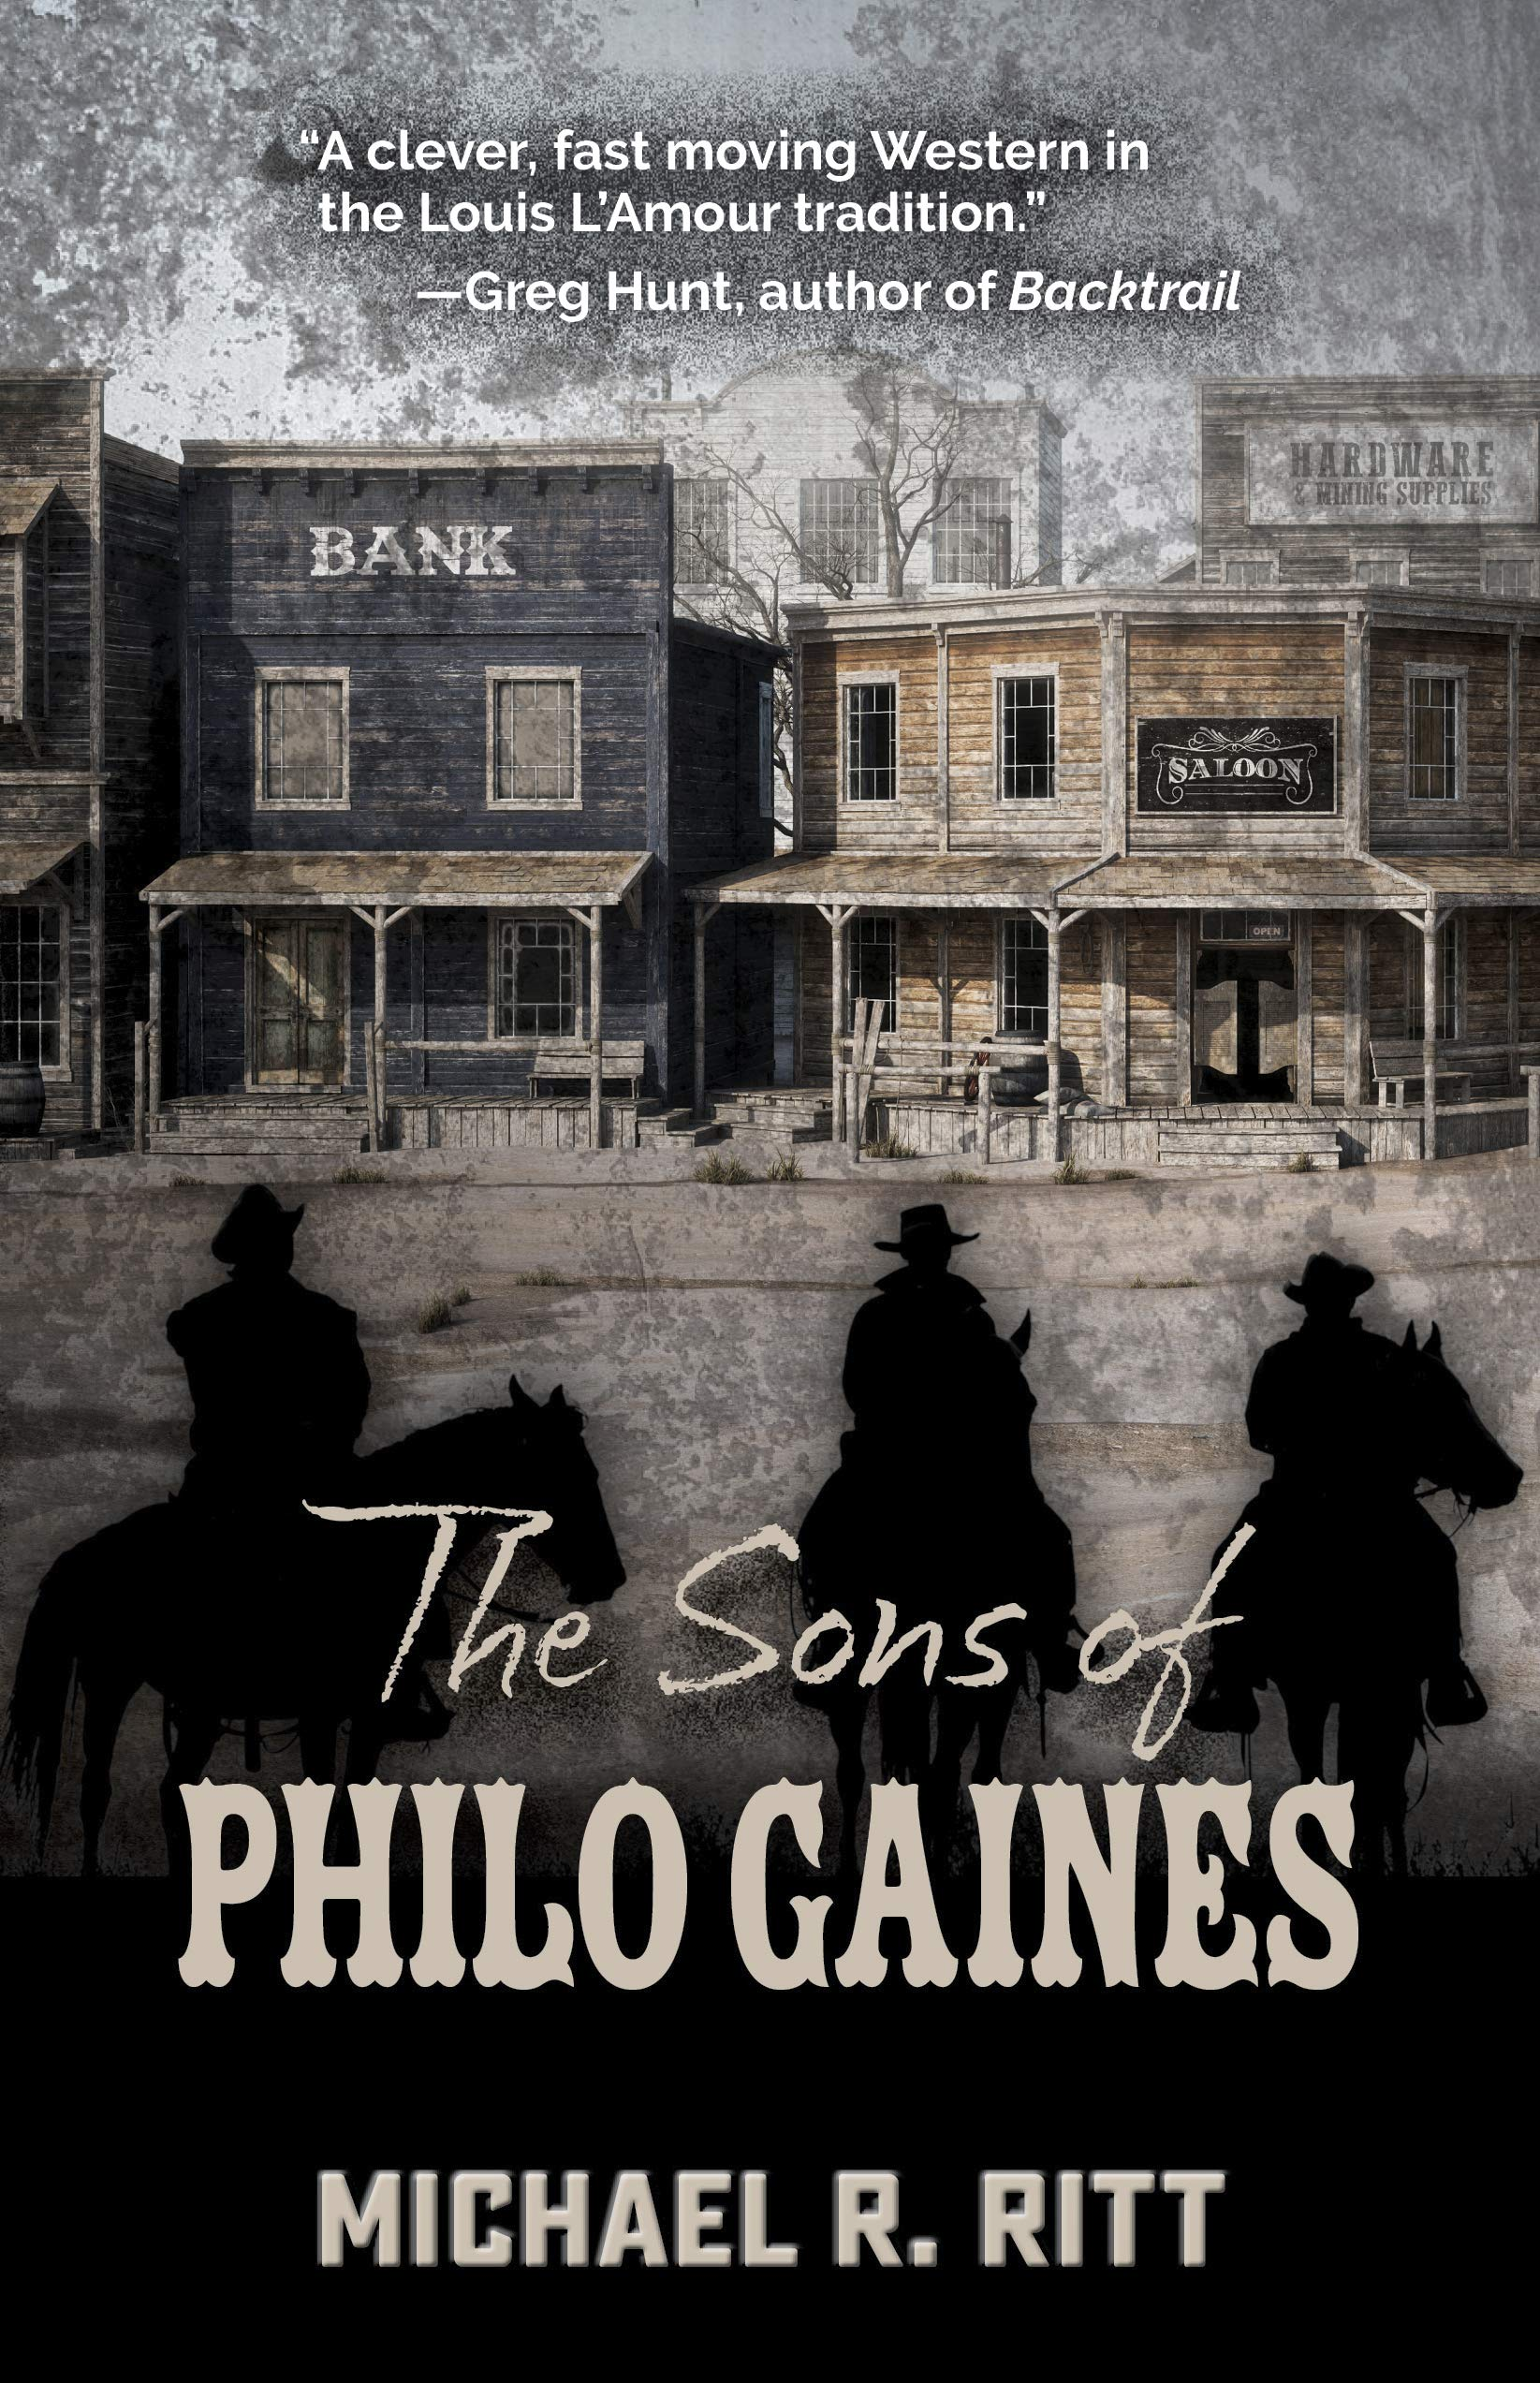 Book Review: The Sons of Philo Gaines by Michael R. Ritt